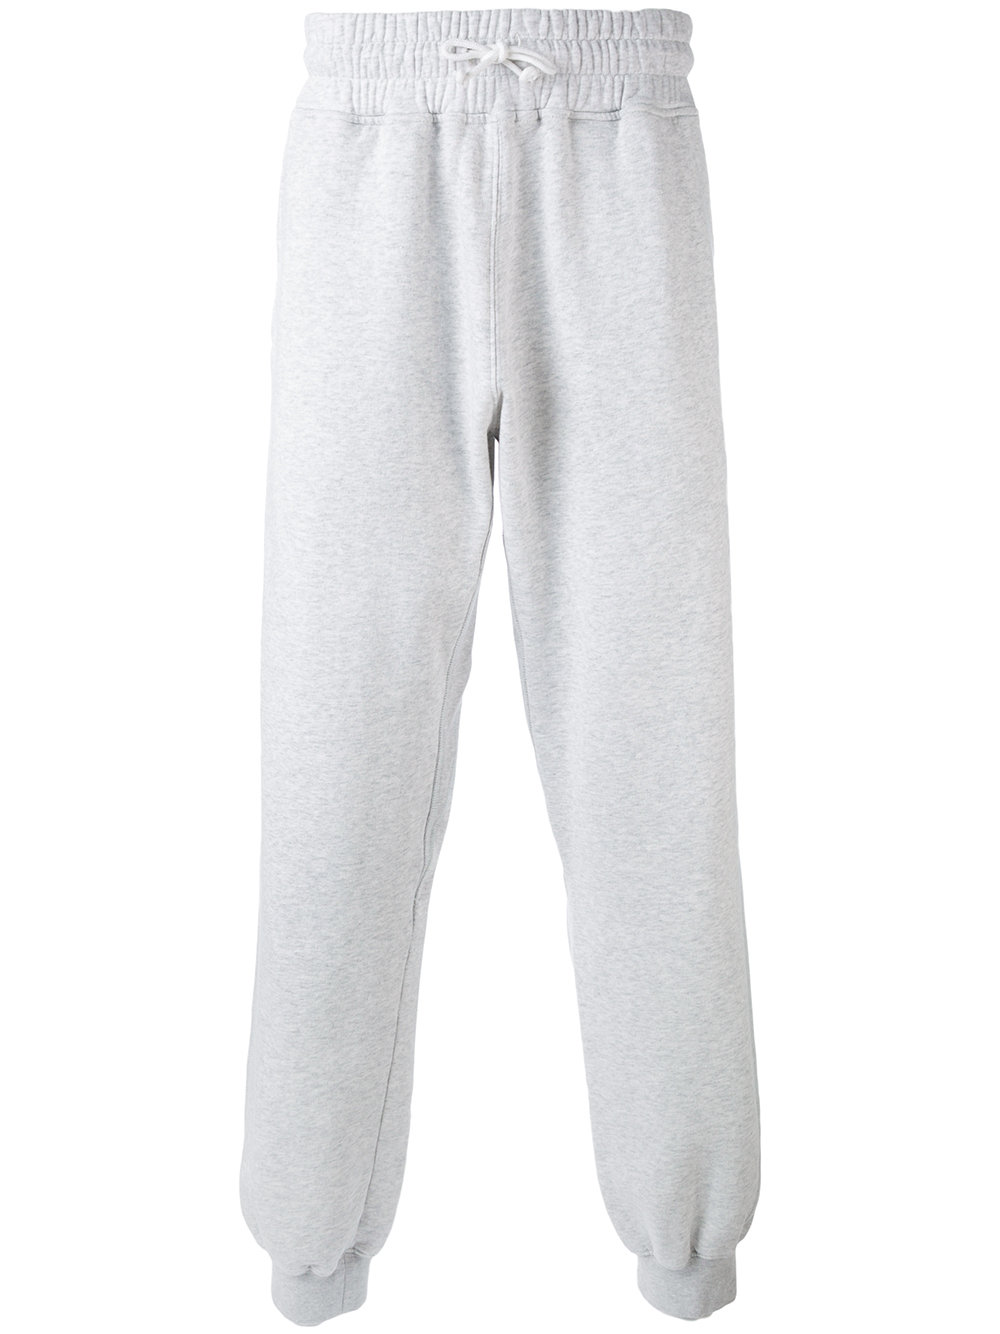 promo code 01e92 36f3f Yeezy Tapered Sweatpants - Farfetch